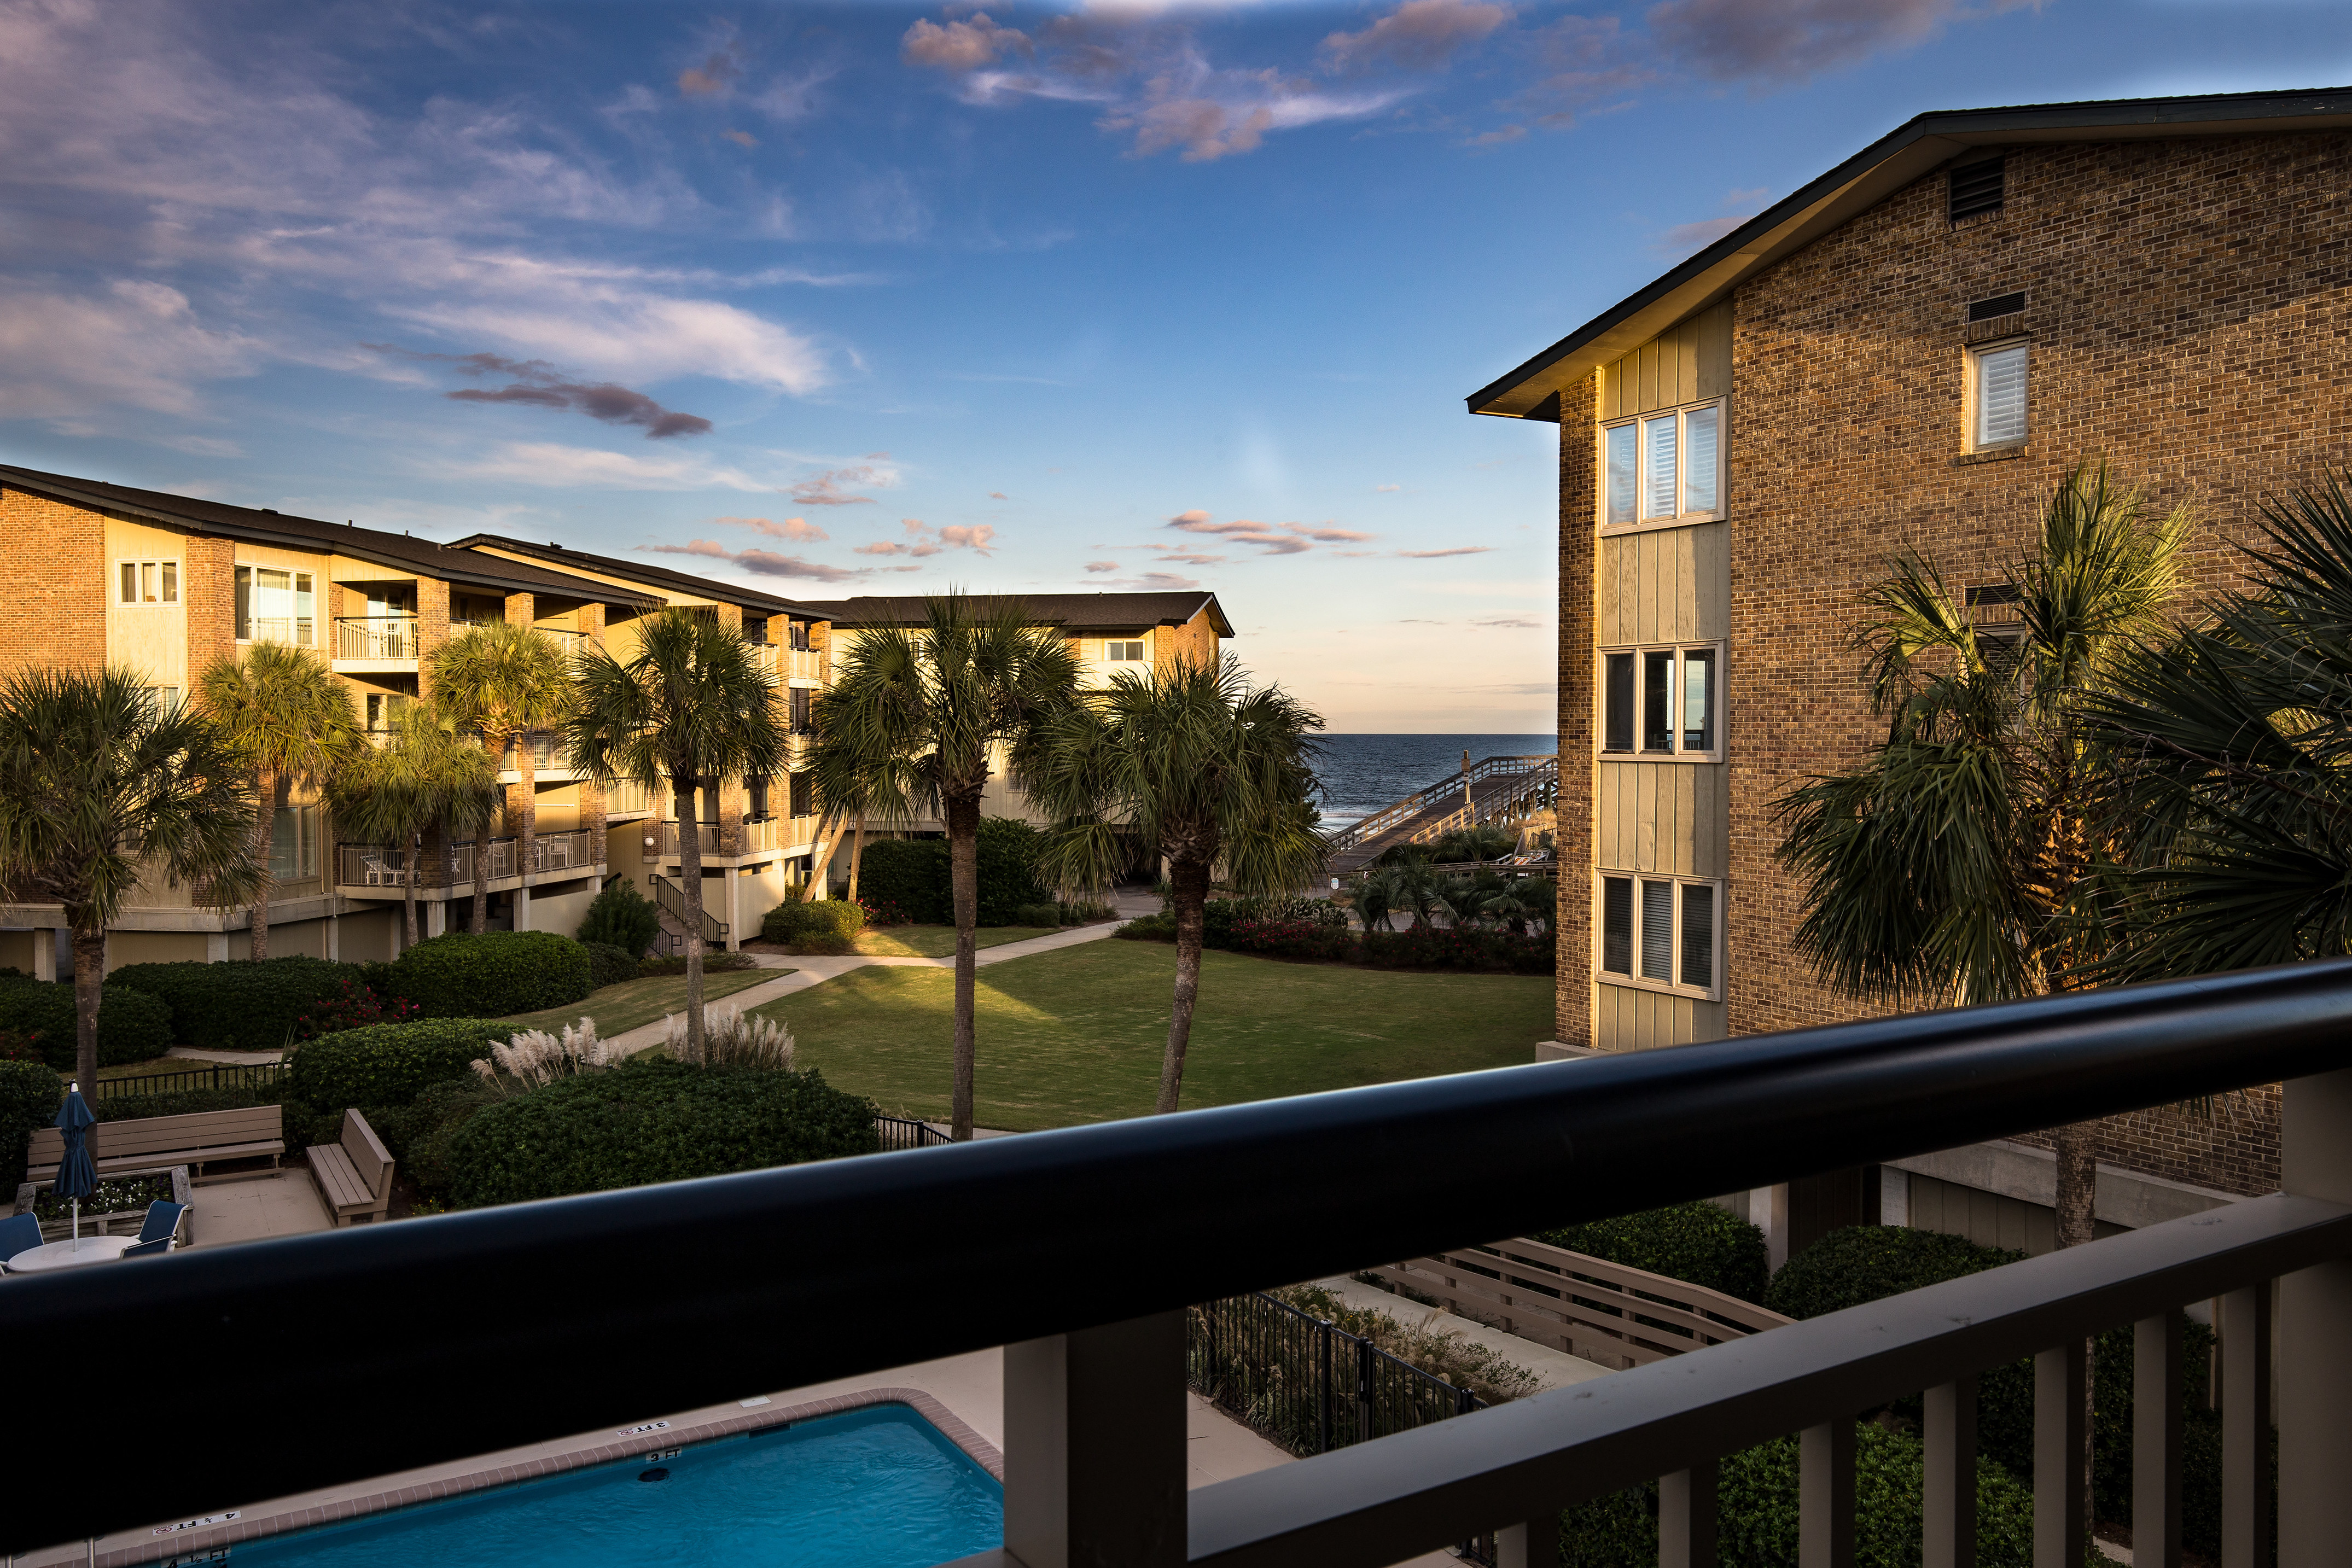 Single Family Home for Sale at Pawleys Pier Village 320 Myrtle Ave #3G Pawleys Island, South Carolina 29585 United States